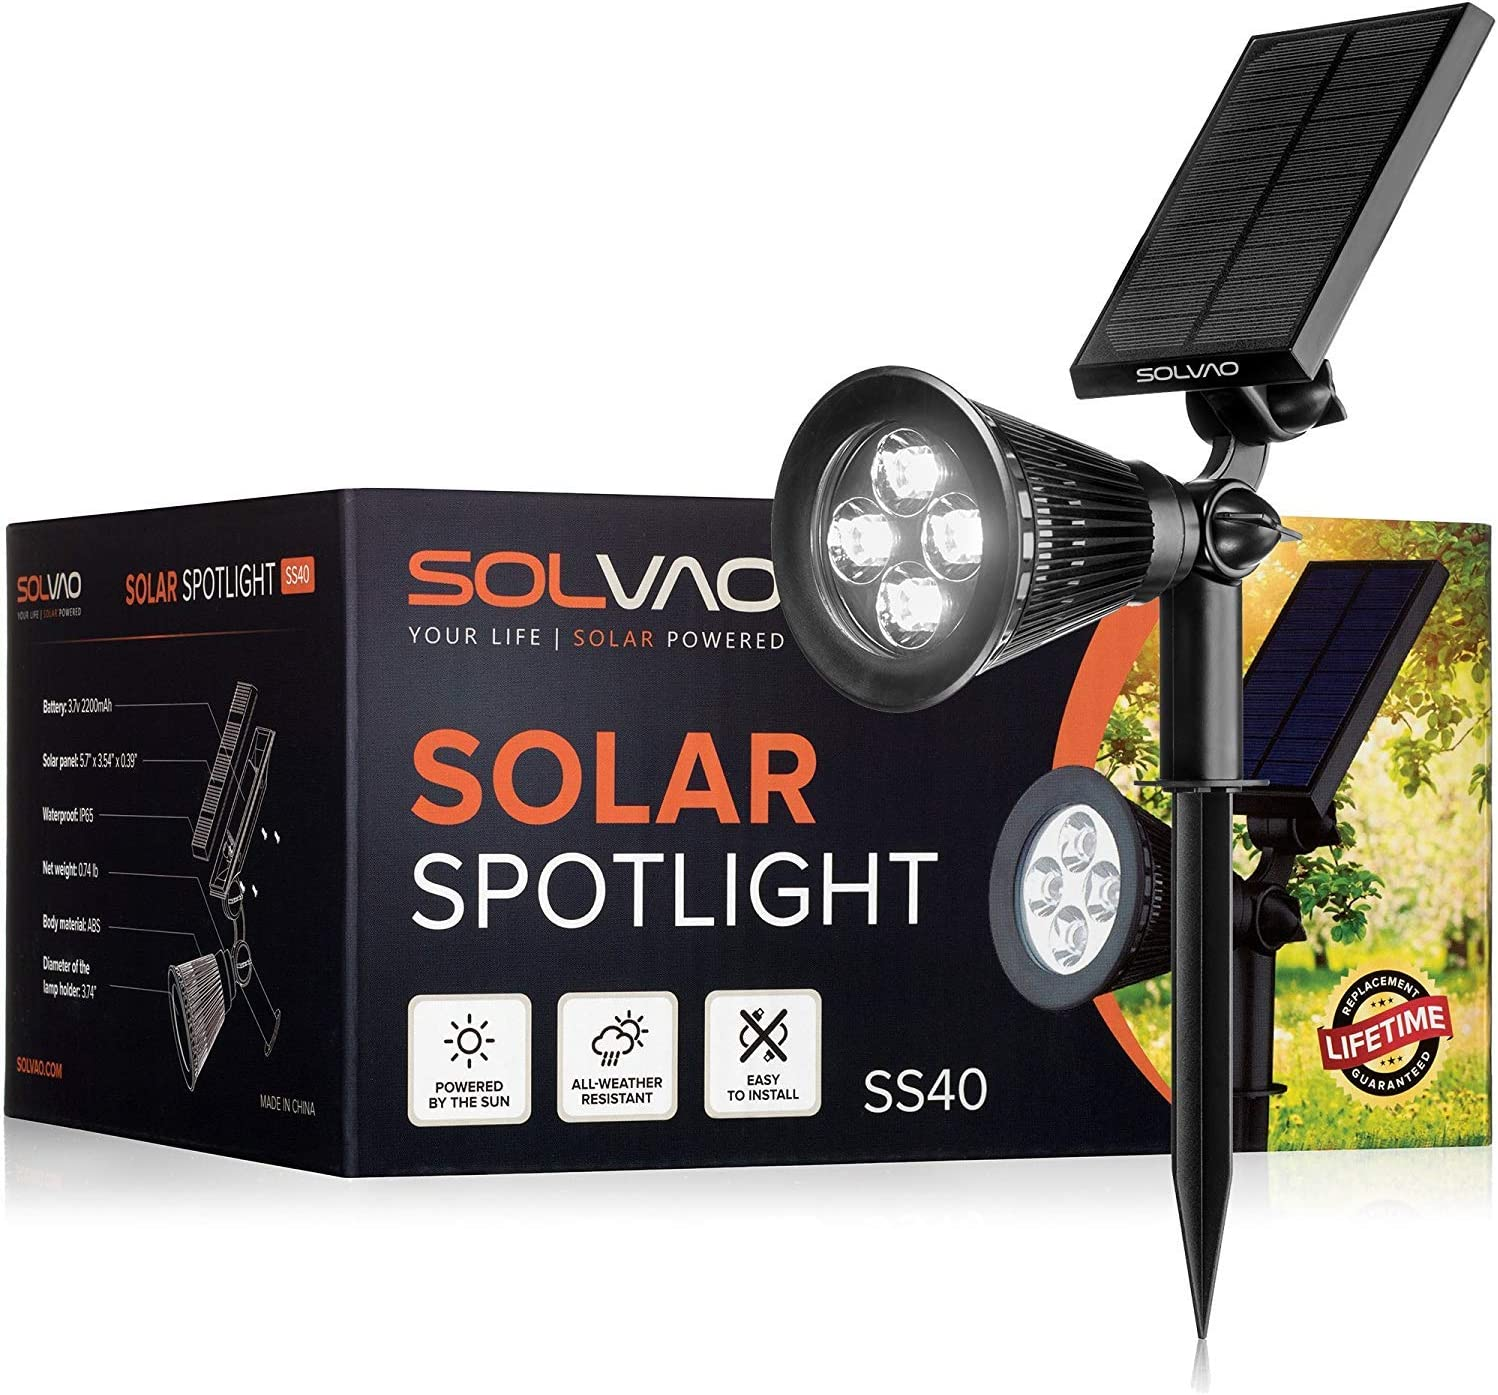 SOLVAO Solar Spotlight (Upgraded) - Ultra Bright, Waterproof, Outdoor LED Spot Light with Auto On/Off Function - Best Sun Powered, Rechargeable Uplight for Lighting Flag Pole, Landscape, Yard & Garden - -